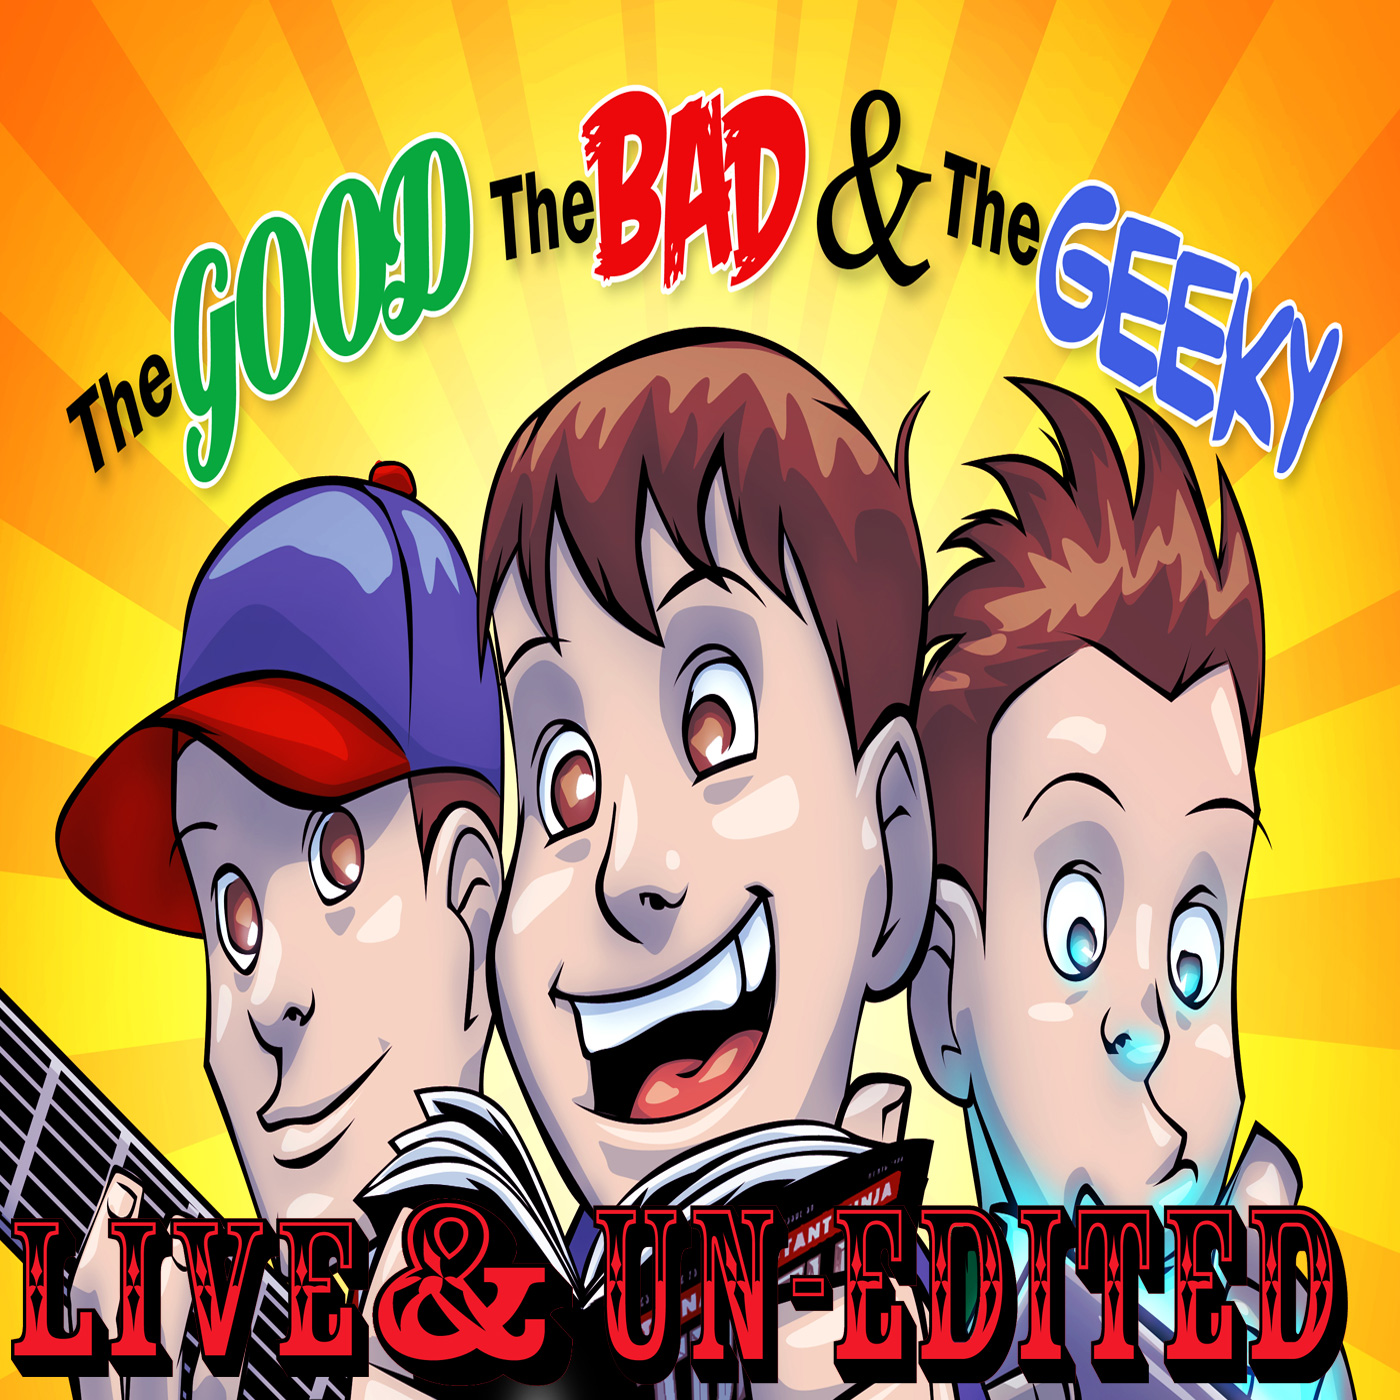 GBG Live & Un-Edited from Packrat Comics June 9, 2012